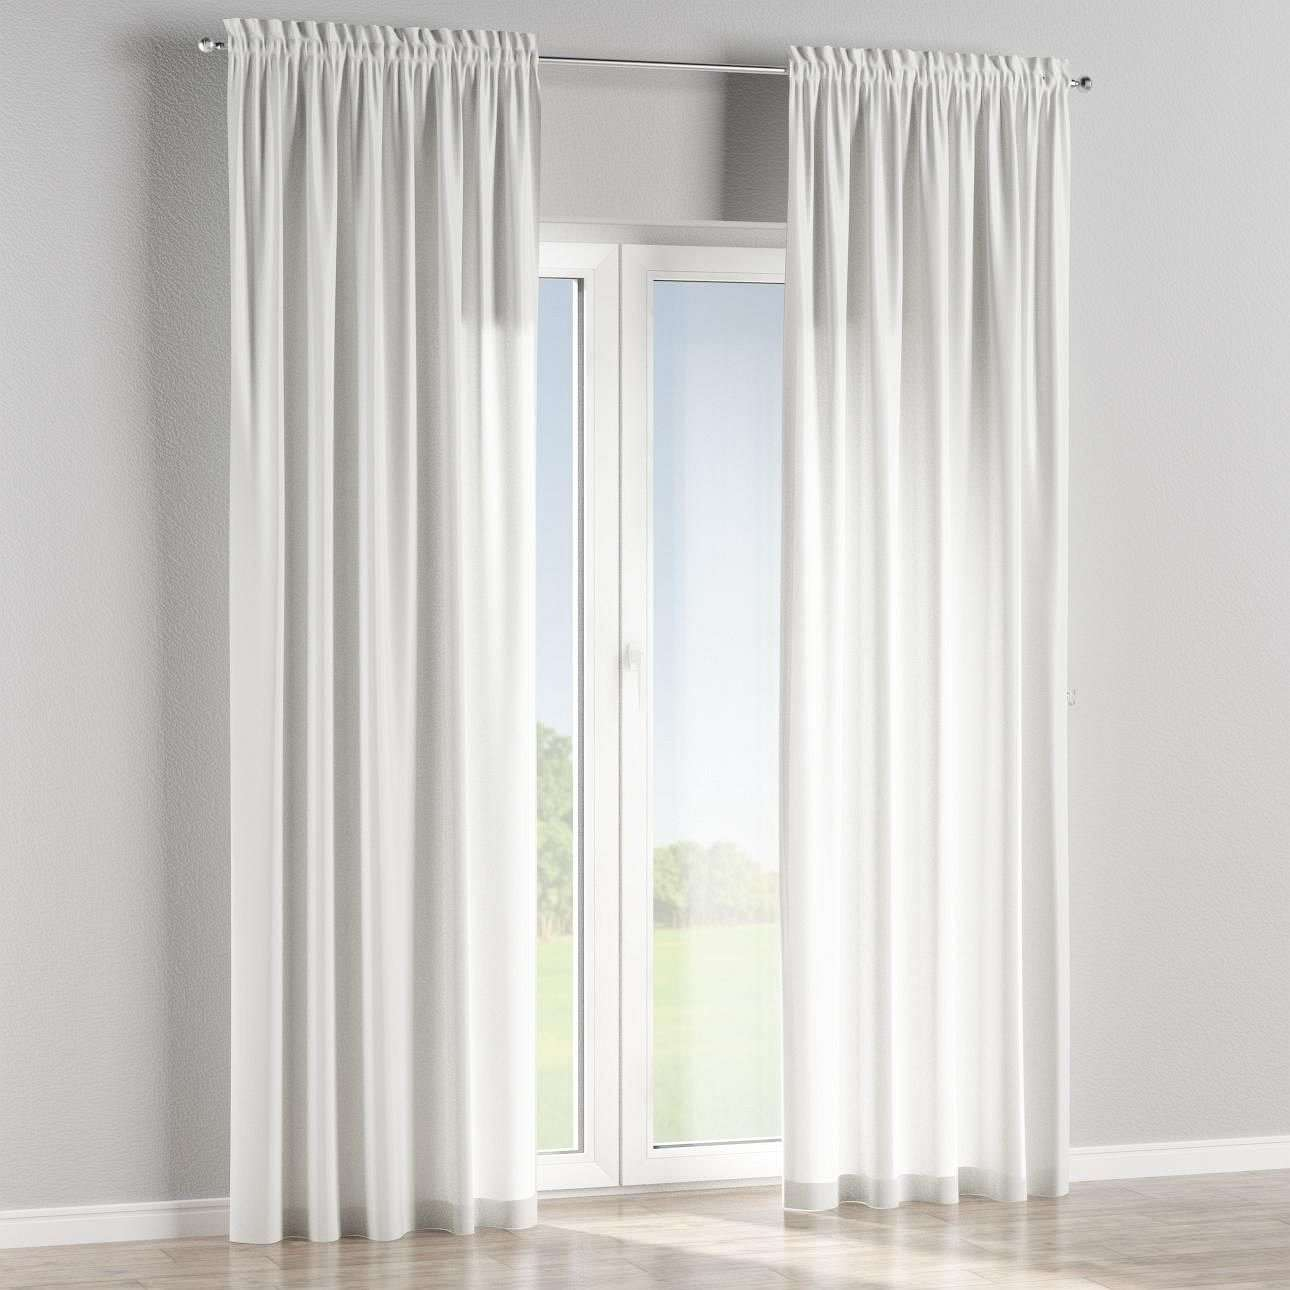 Slot and frill curtains in collection Victoria, fabric: 130-05